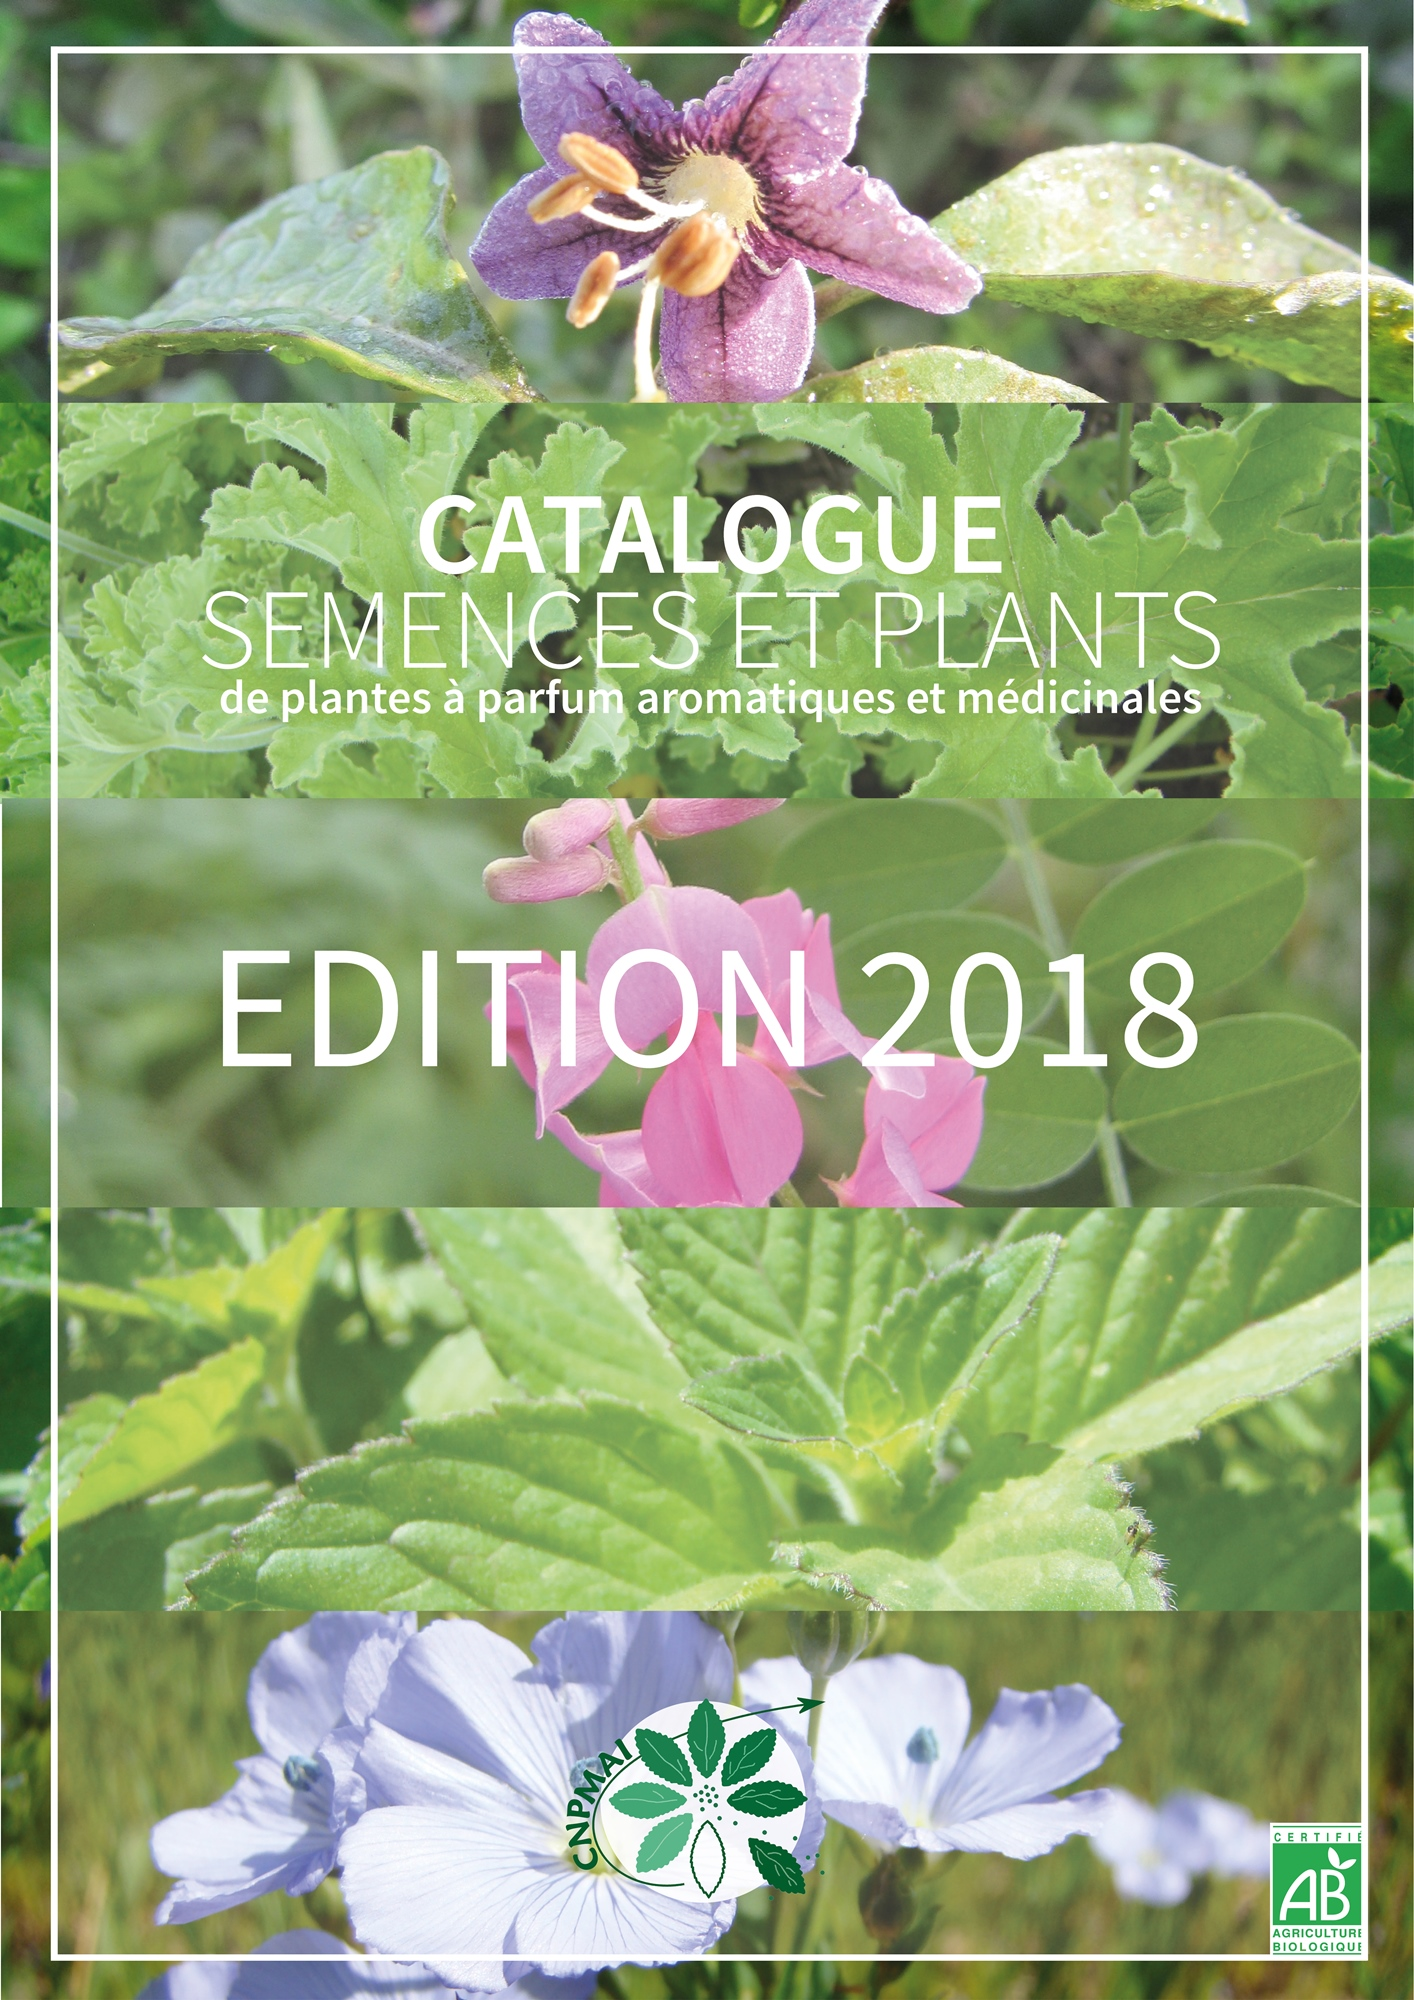 Vente de semences et plants conservatoire national des for Catalogue de plantes